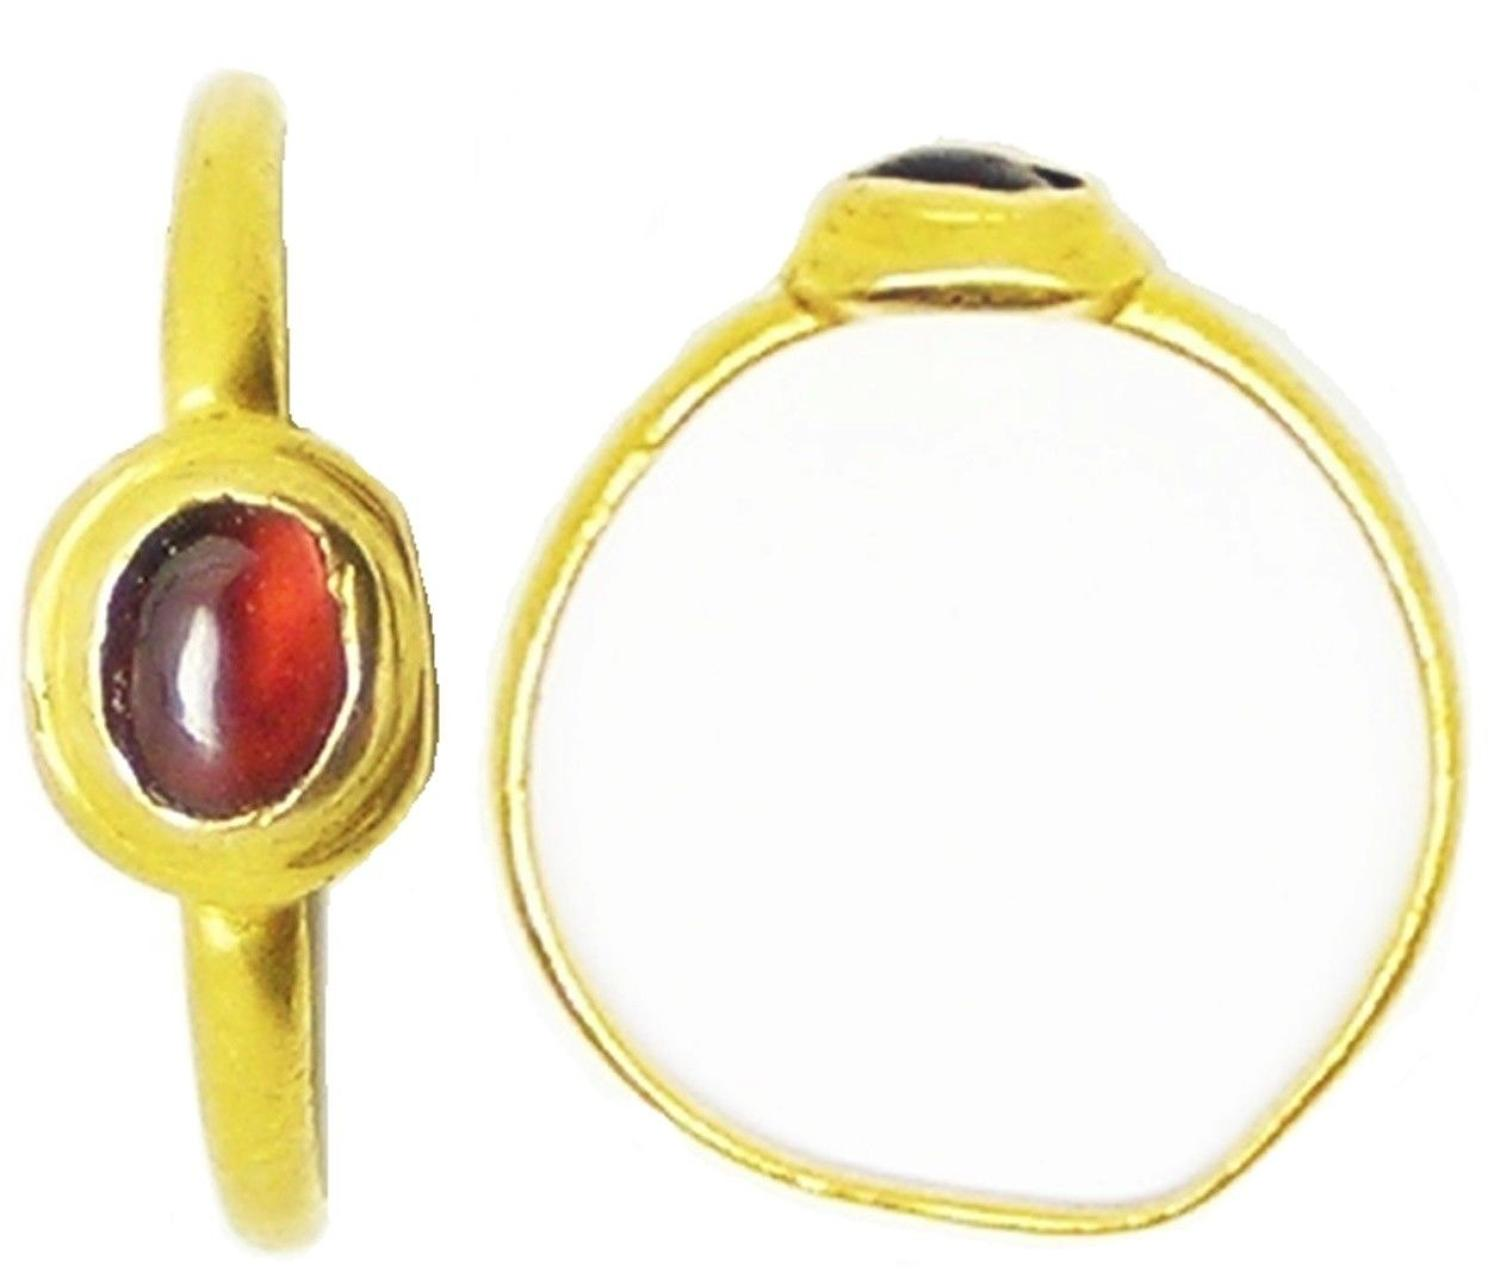 Medieval Gold & Garnet Gemstone Finger Ring